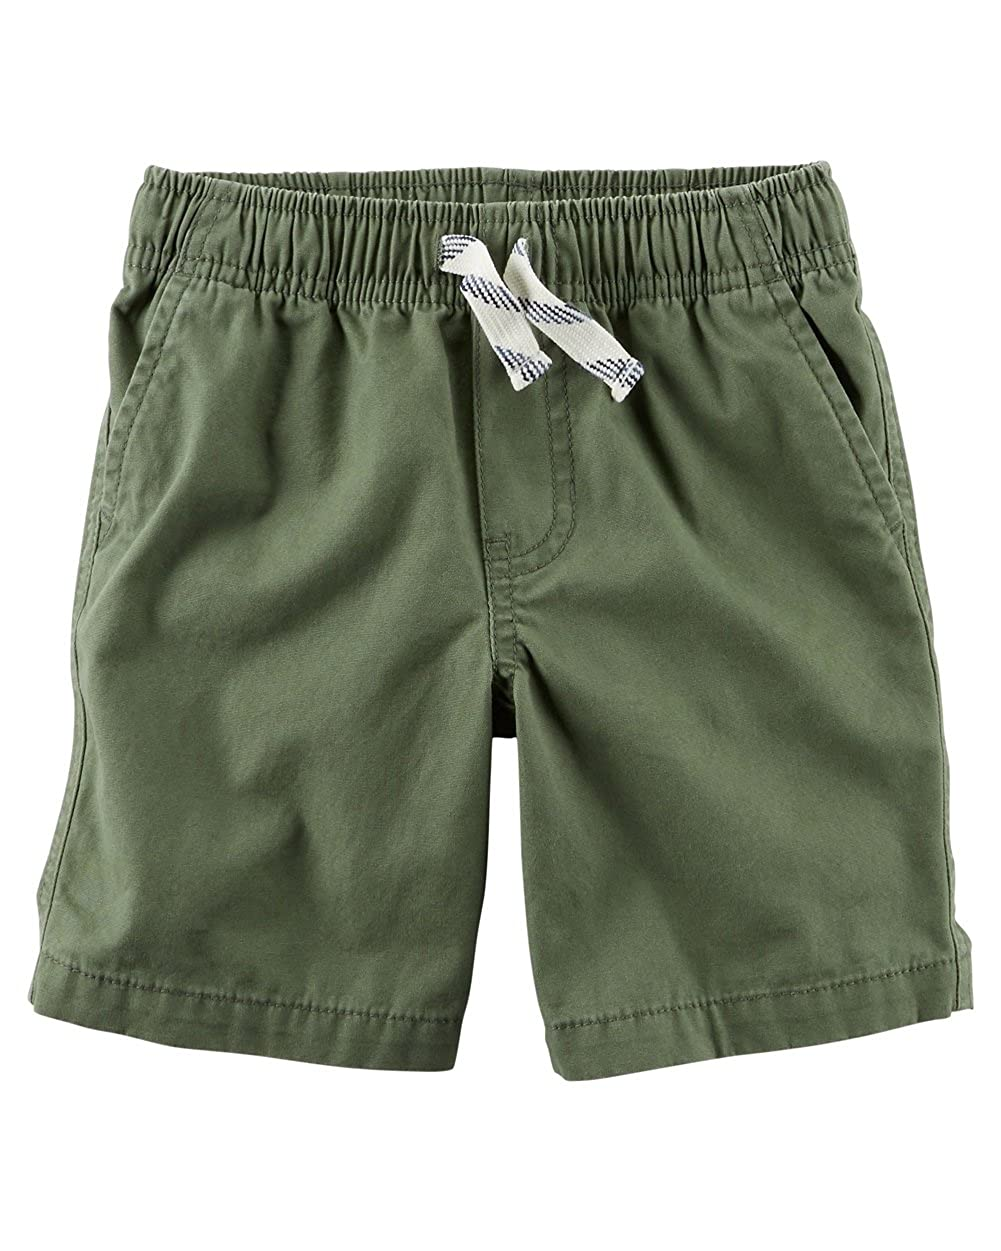 Carter's Boys' Pull-On Canvas Shorts